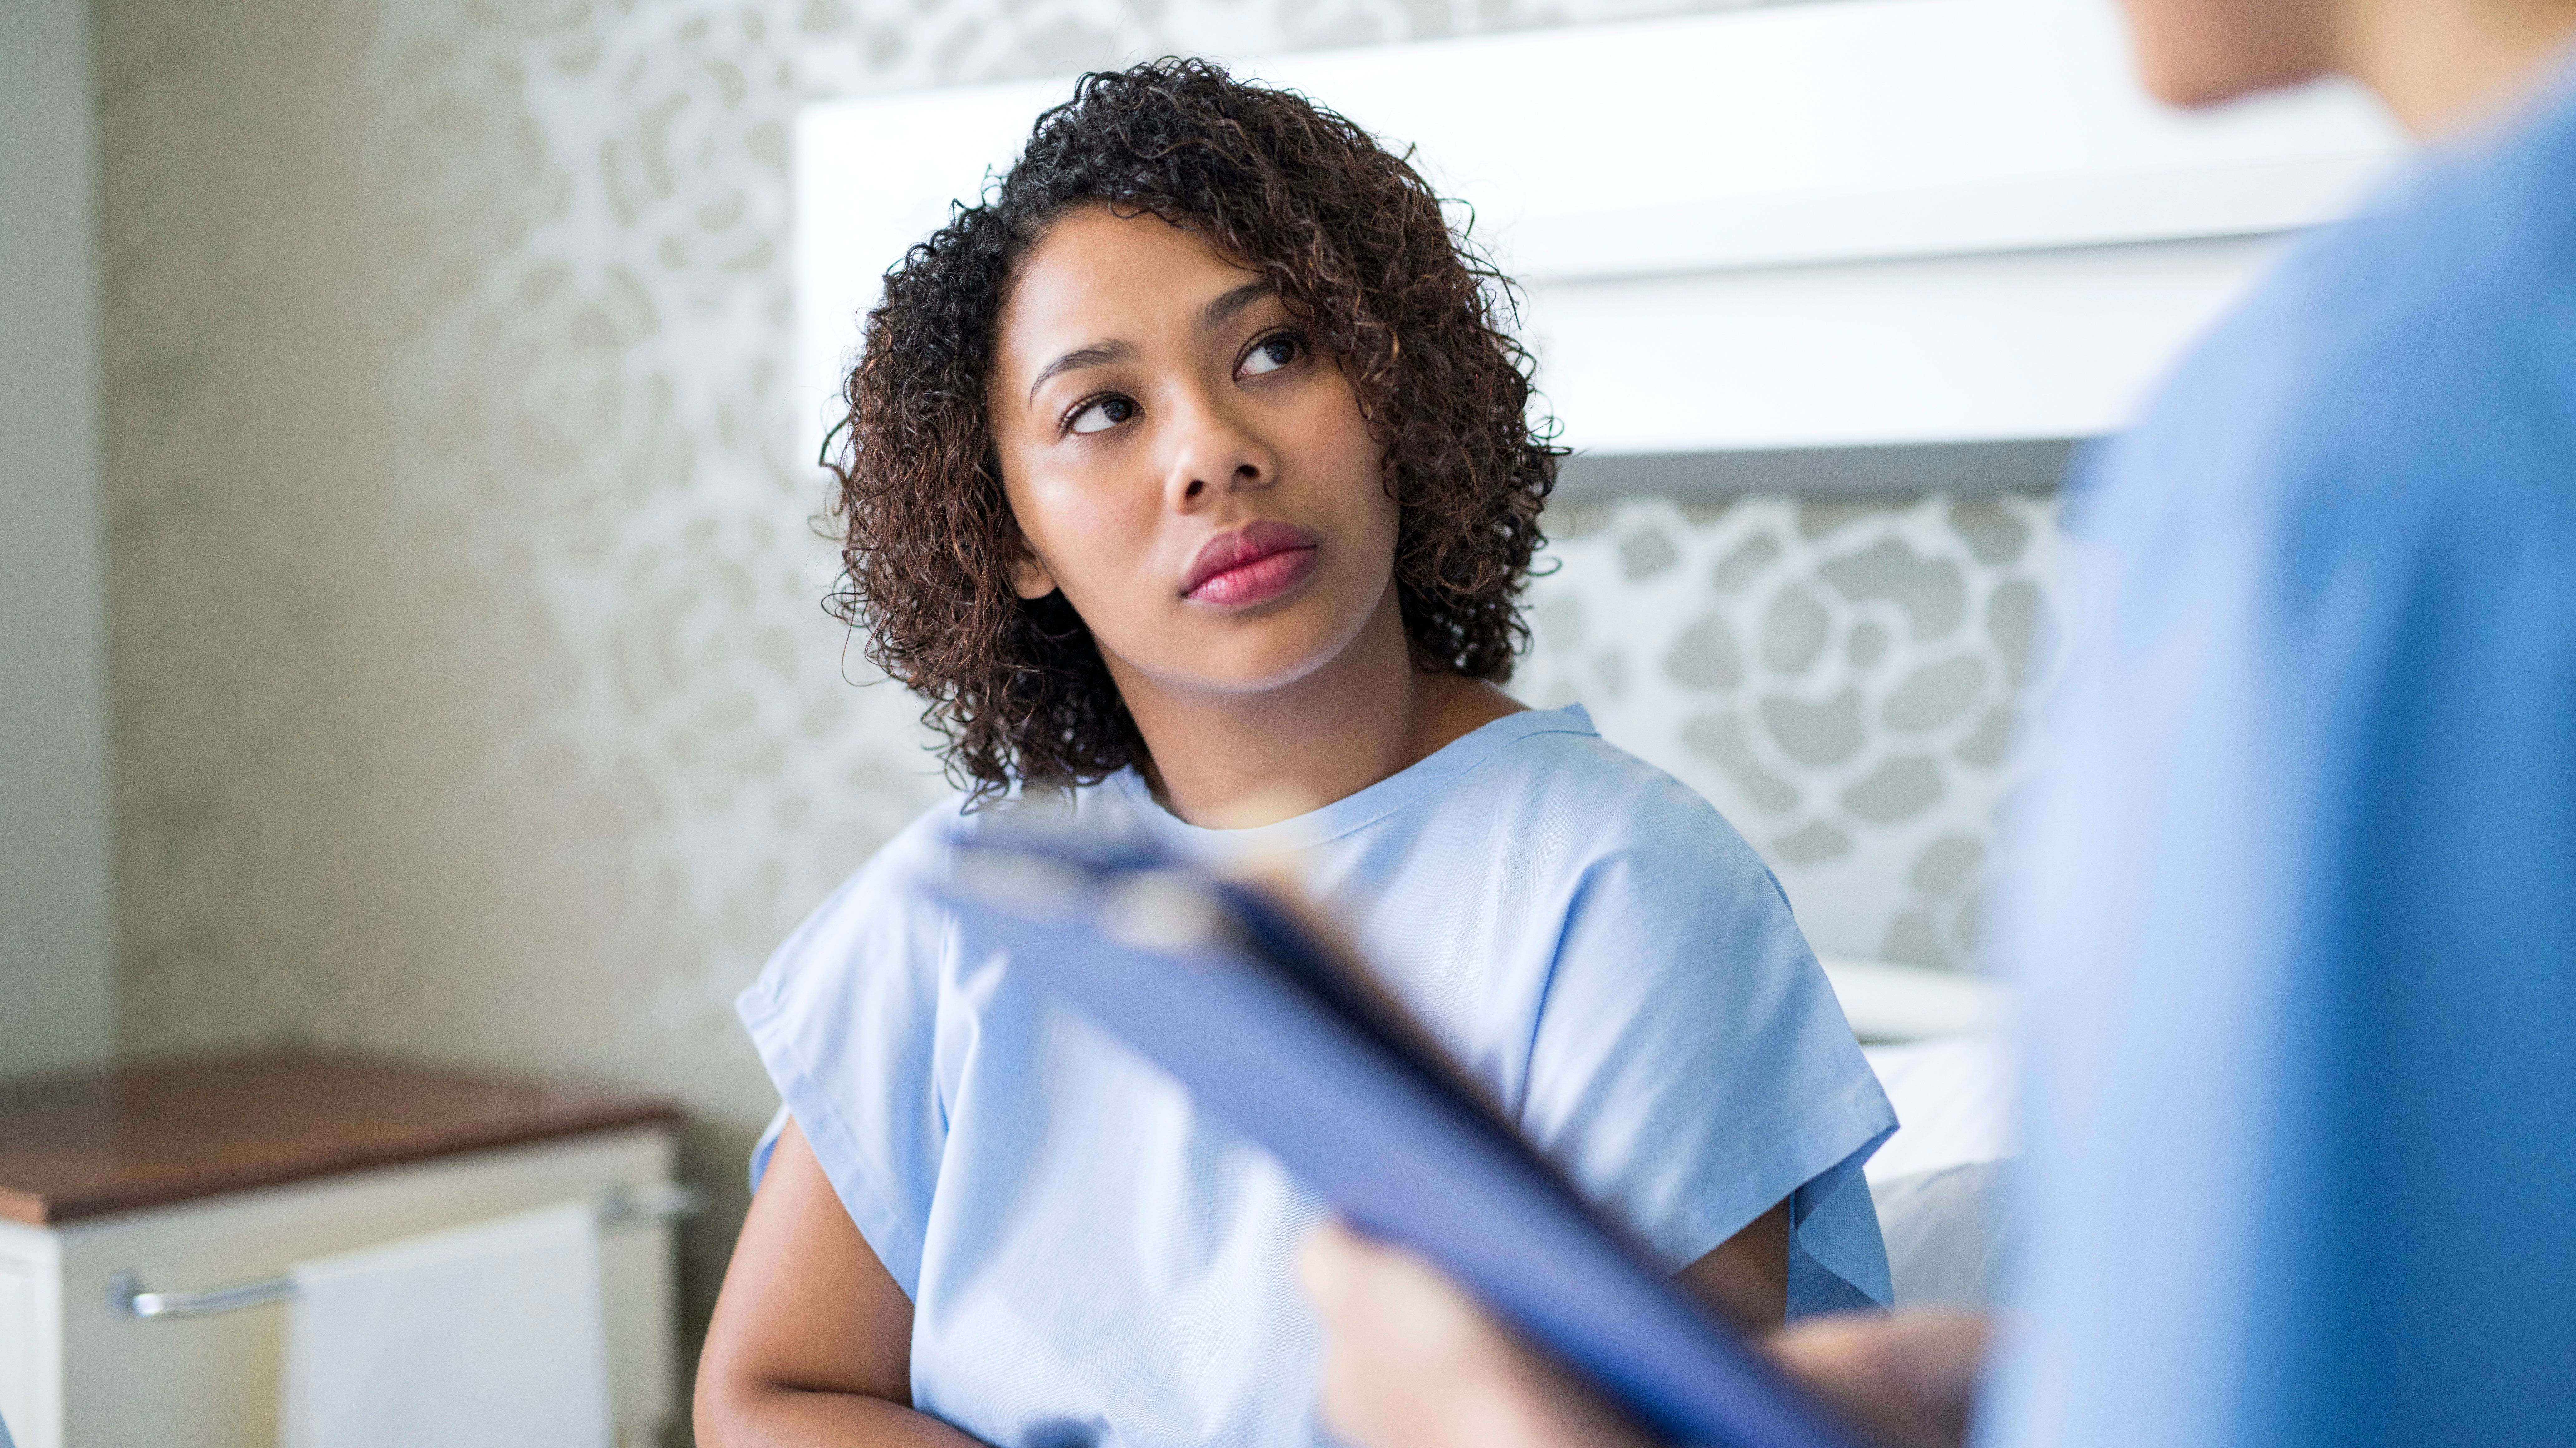 What To Do If You Feel Like You've Been Misdiagnosed By Your